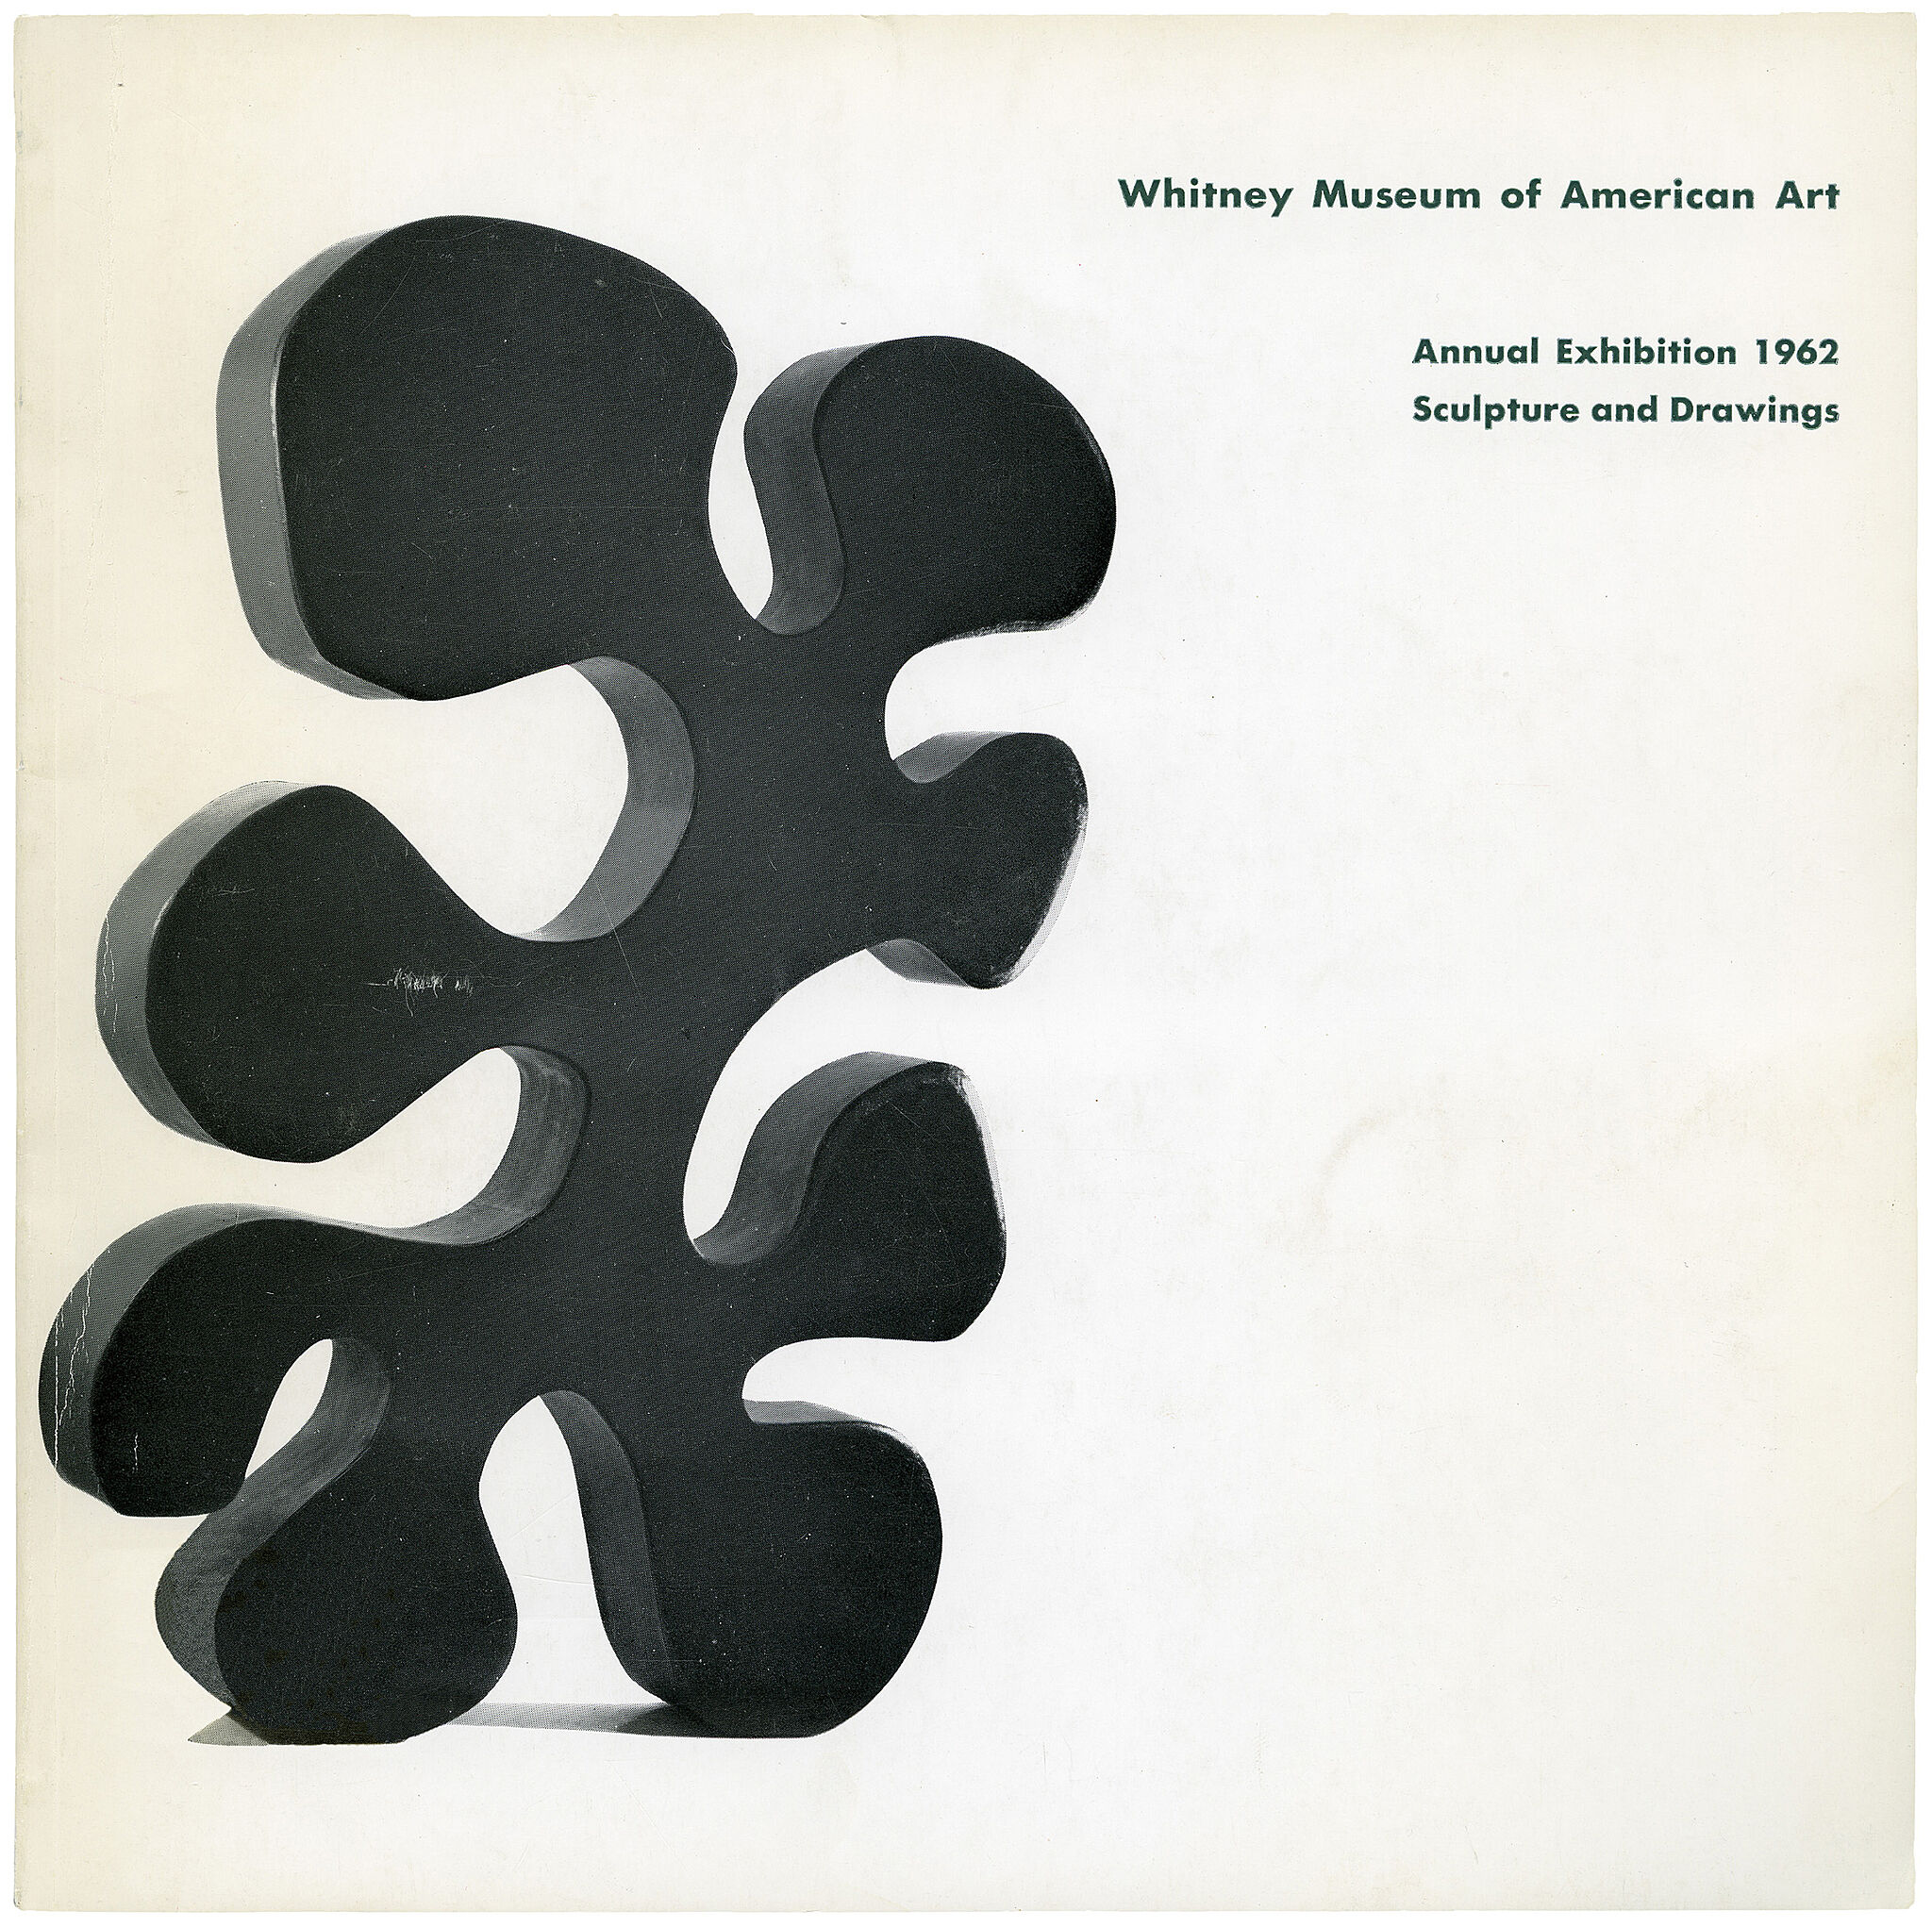 Catalogue cover for Annual Exhibition 1962: Contemporary Sculpture and Drawings